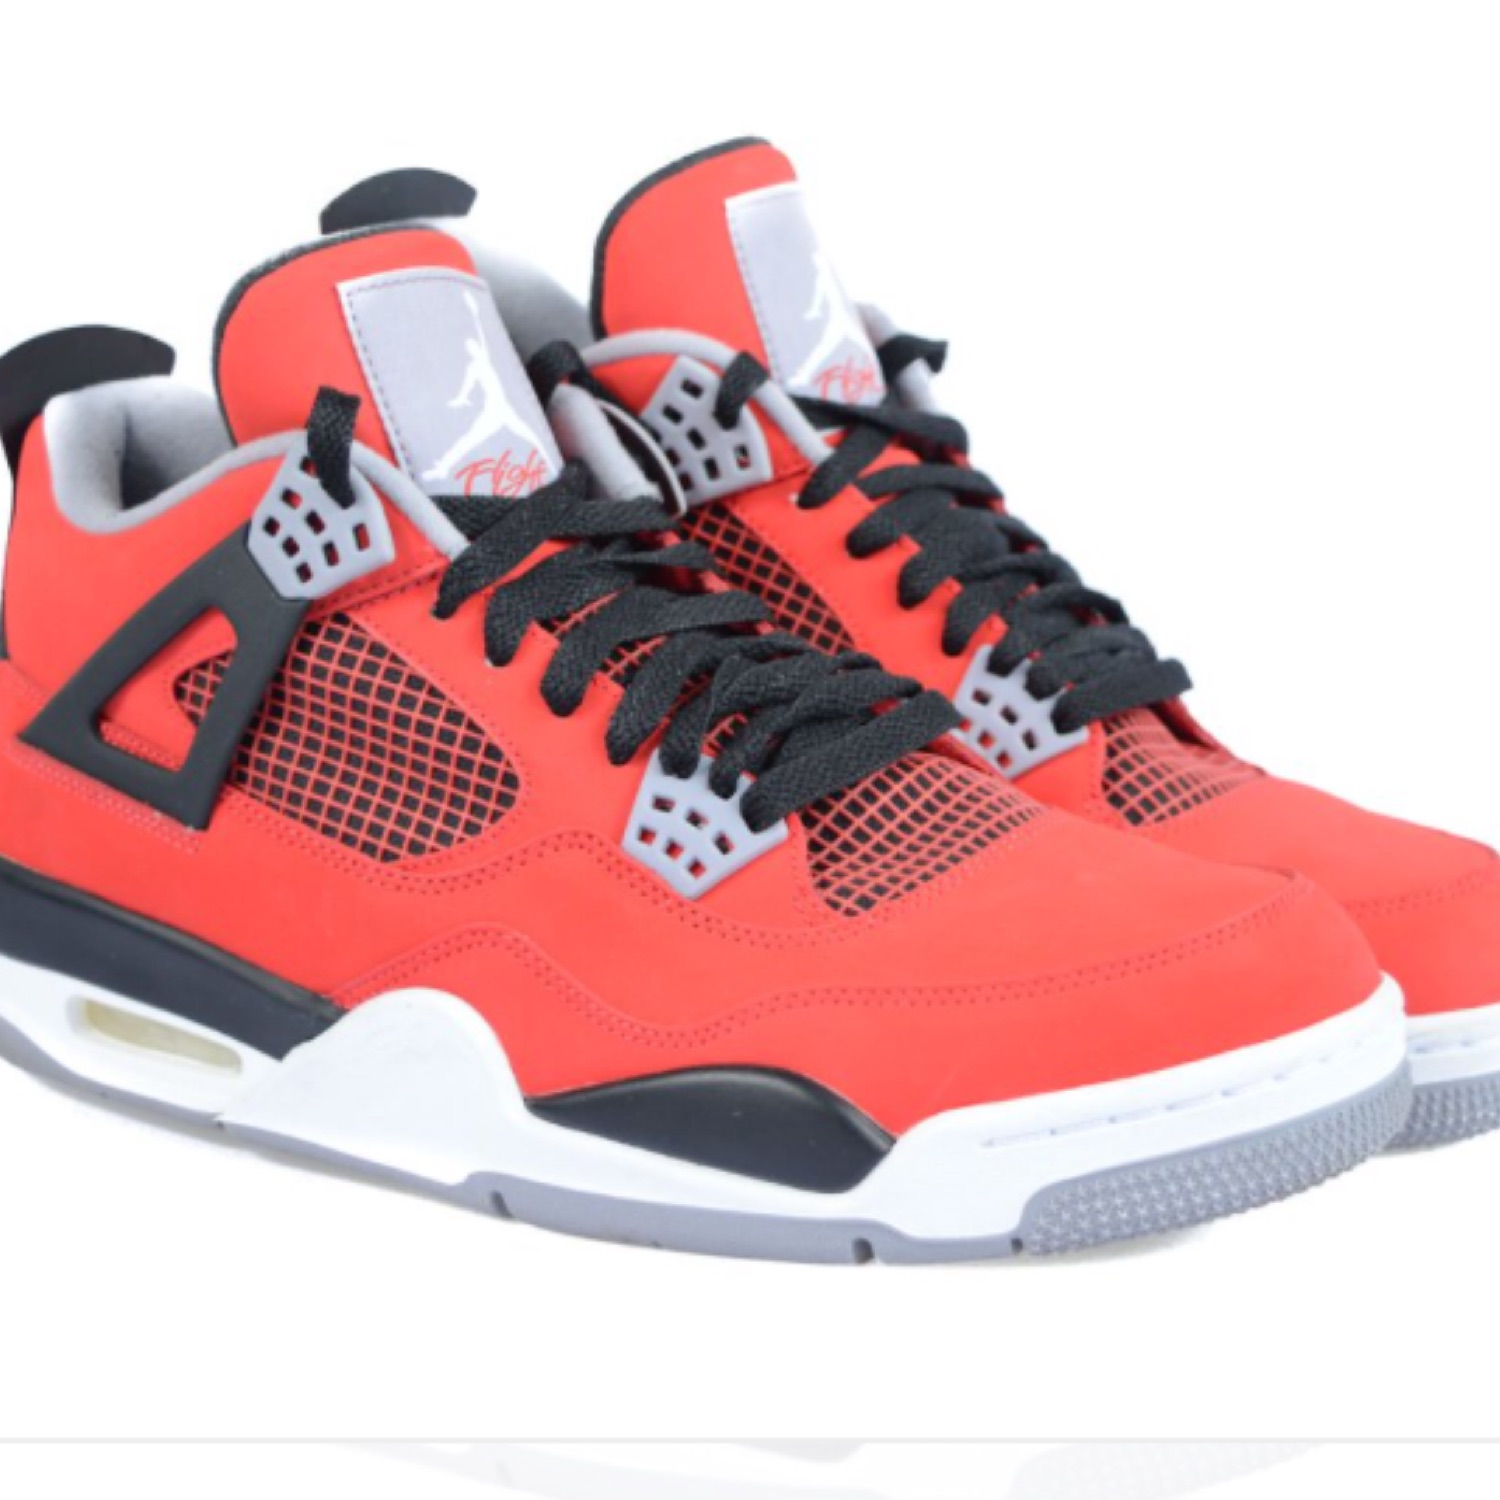 new styles 15f51 ae76a Nike Air Jordan 4 Retro